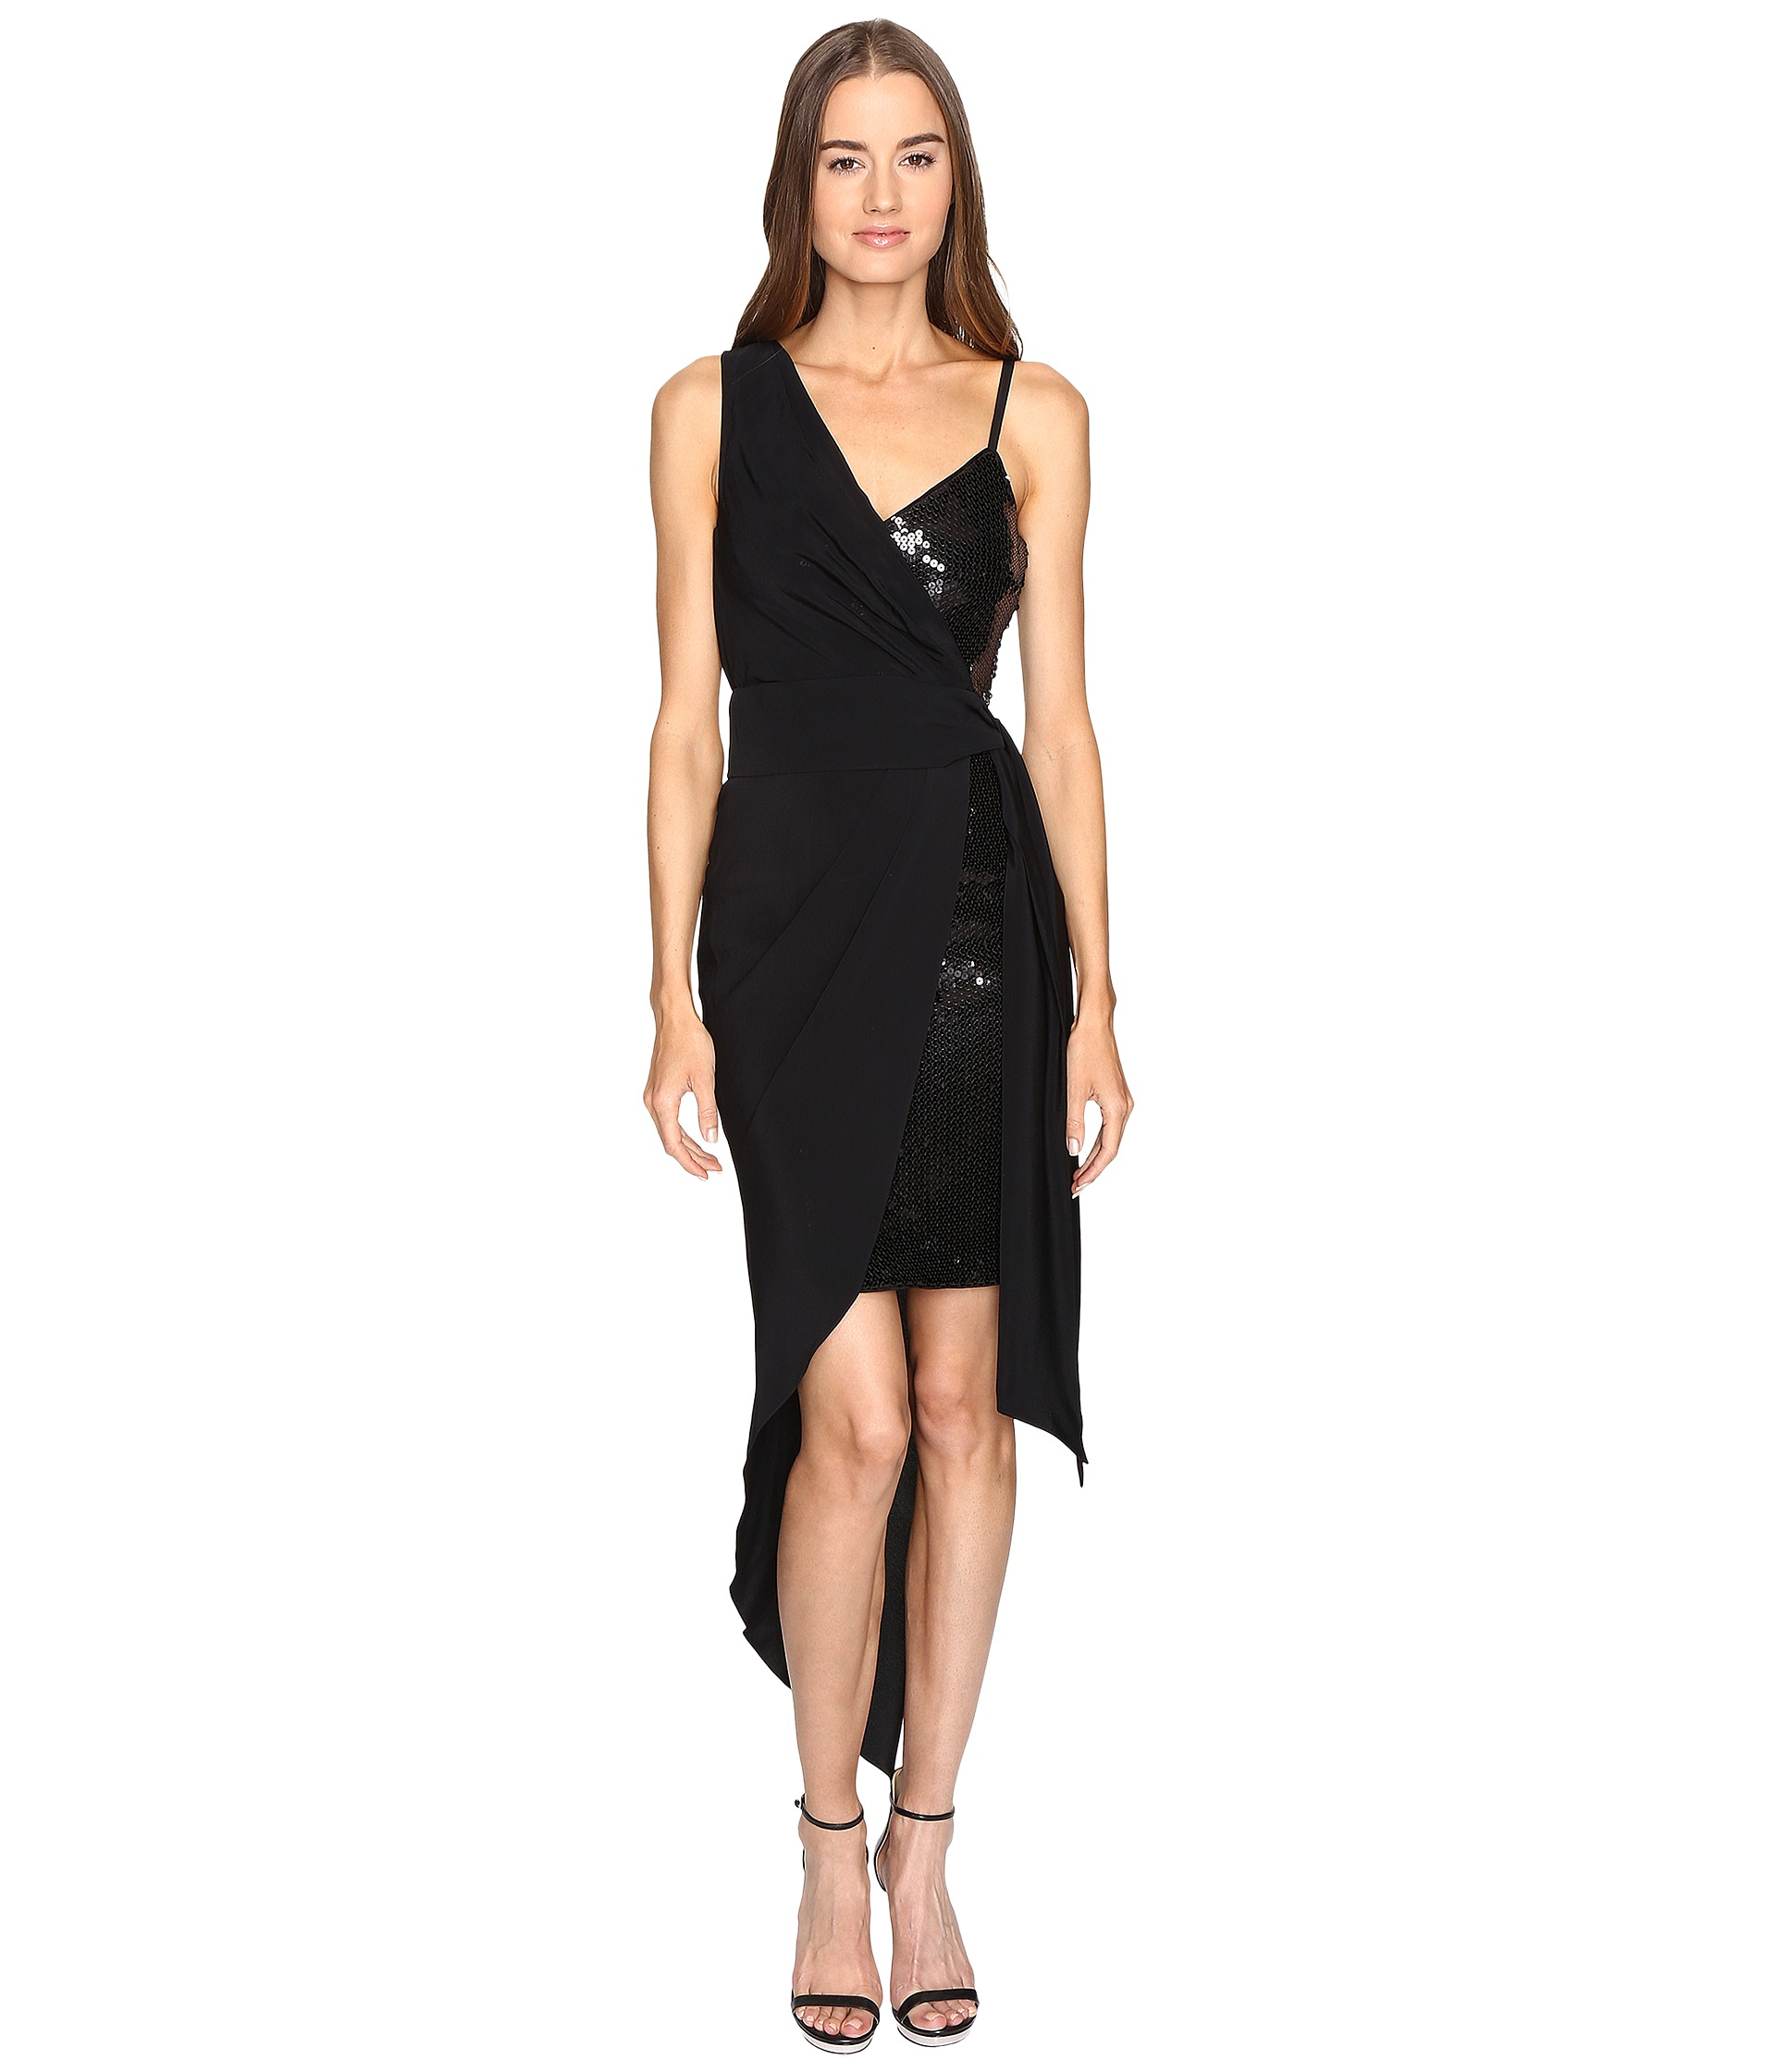 Boutique Moschino Cocktail Dress with Sash - Zappos.com Free ...